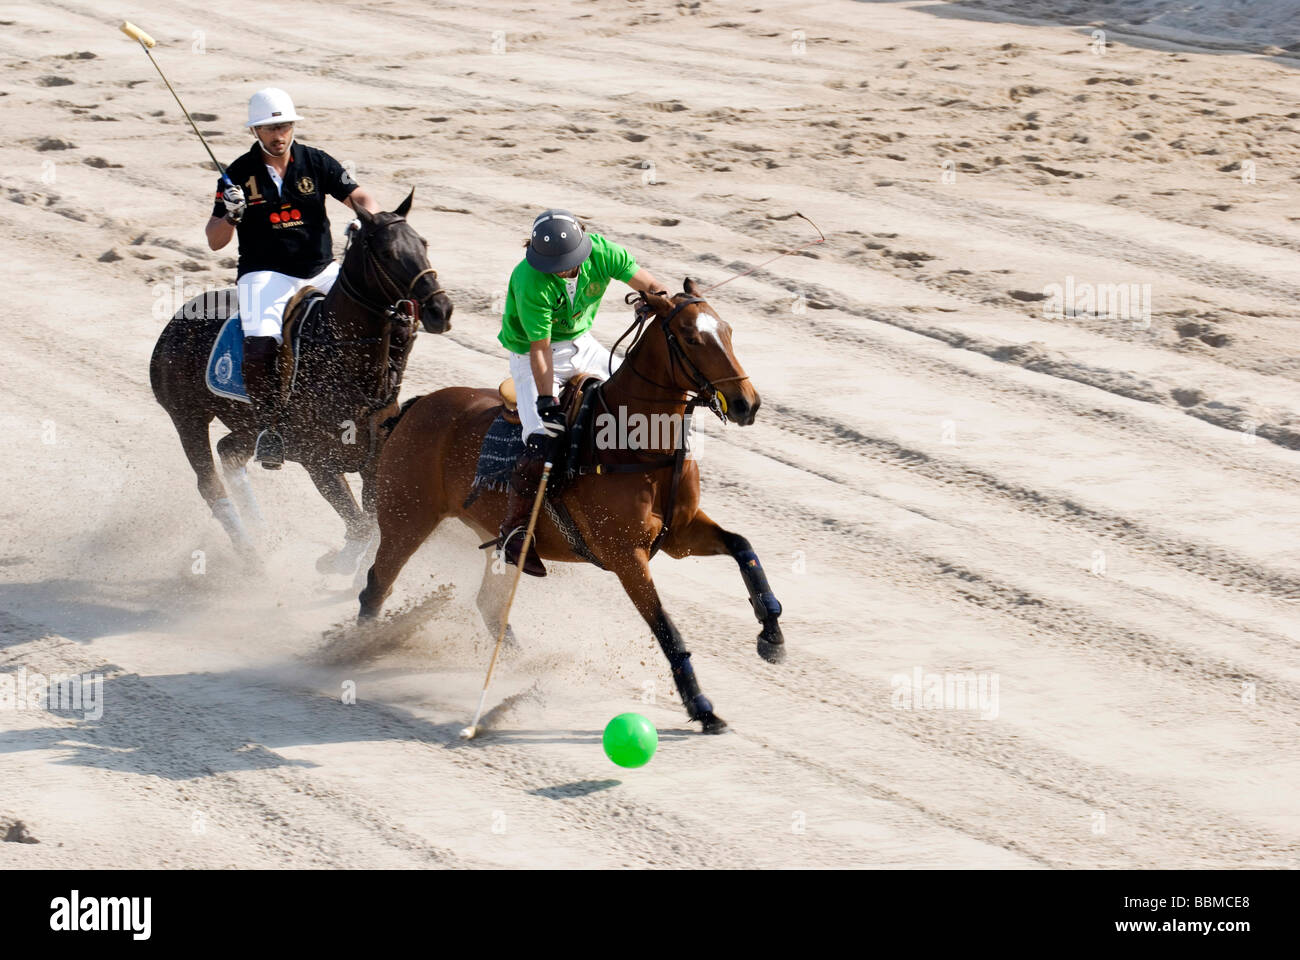 Game scene with Christobal Durrieu, green, black helmet, during beach polo tournament, Timmendorfer Strand, Schleswig - Stock Image